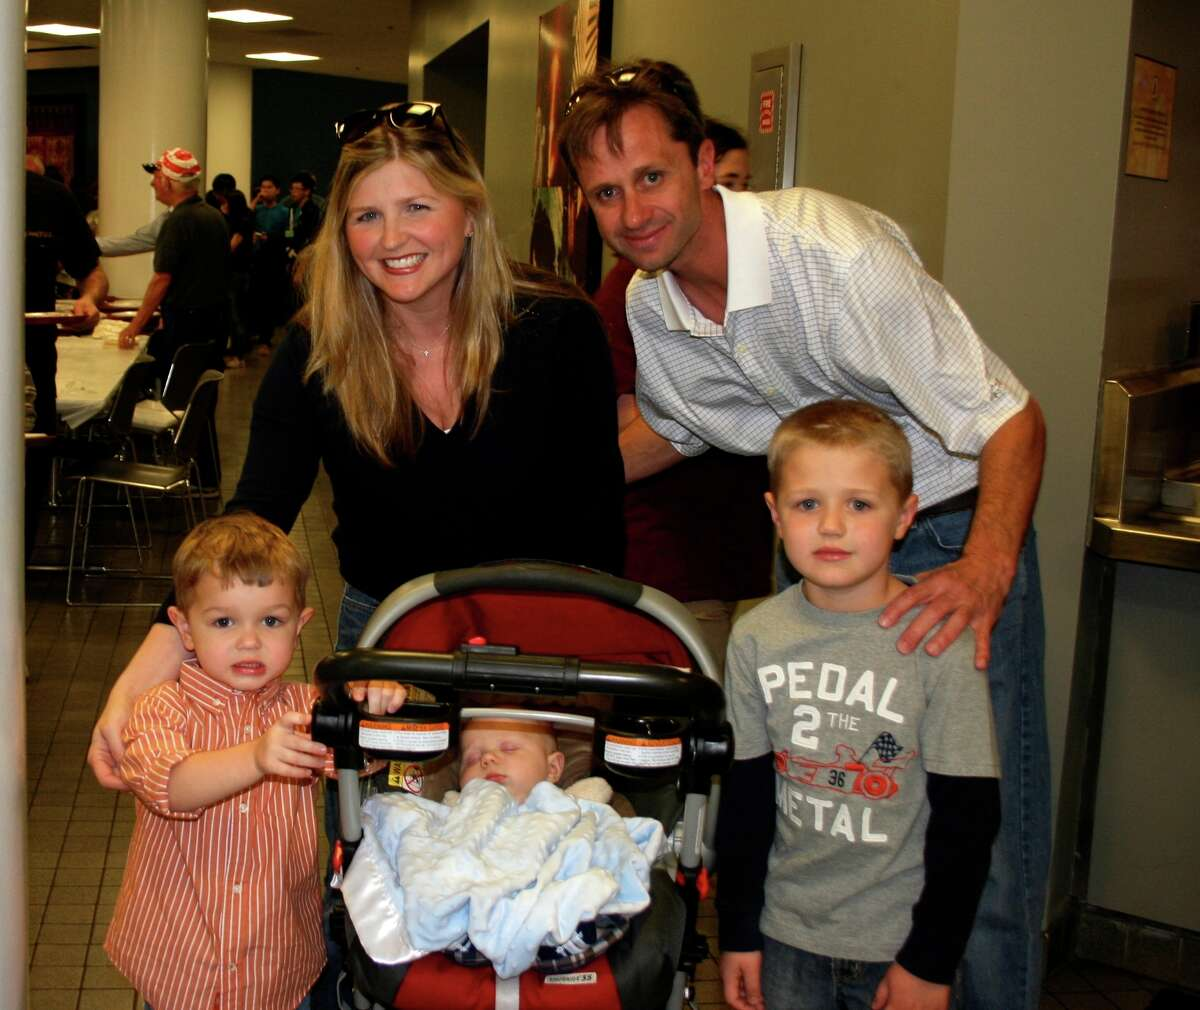 The Spaghetti Dinner always welcomes families. Among those arriving early were Andrew and Brigit Engleman, with their children Gabe, left, Lucky, and baby Cullen.